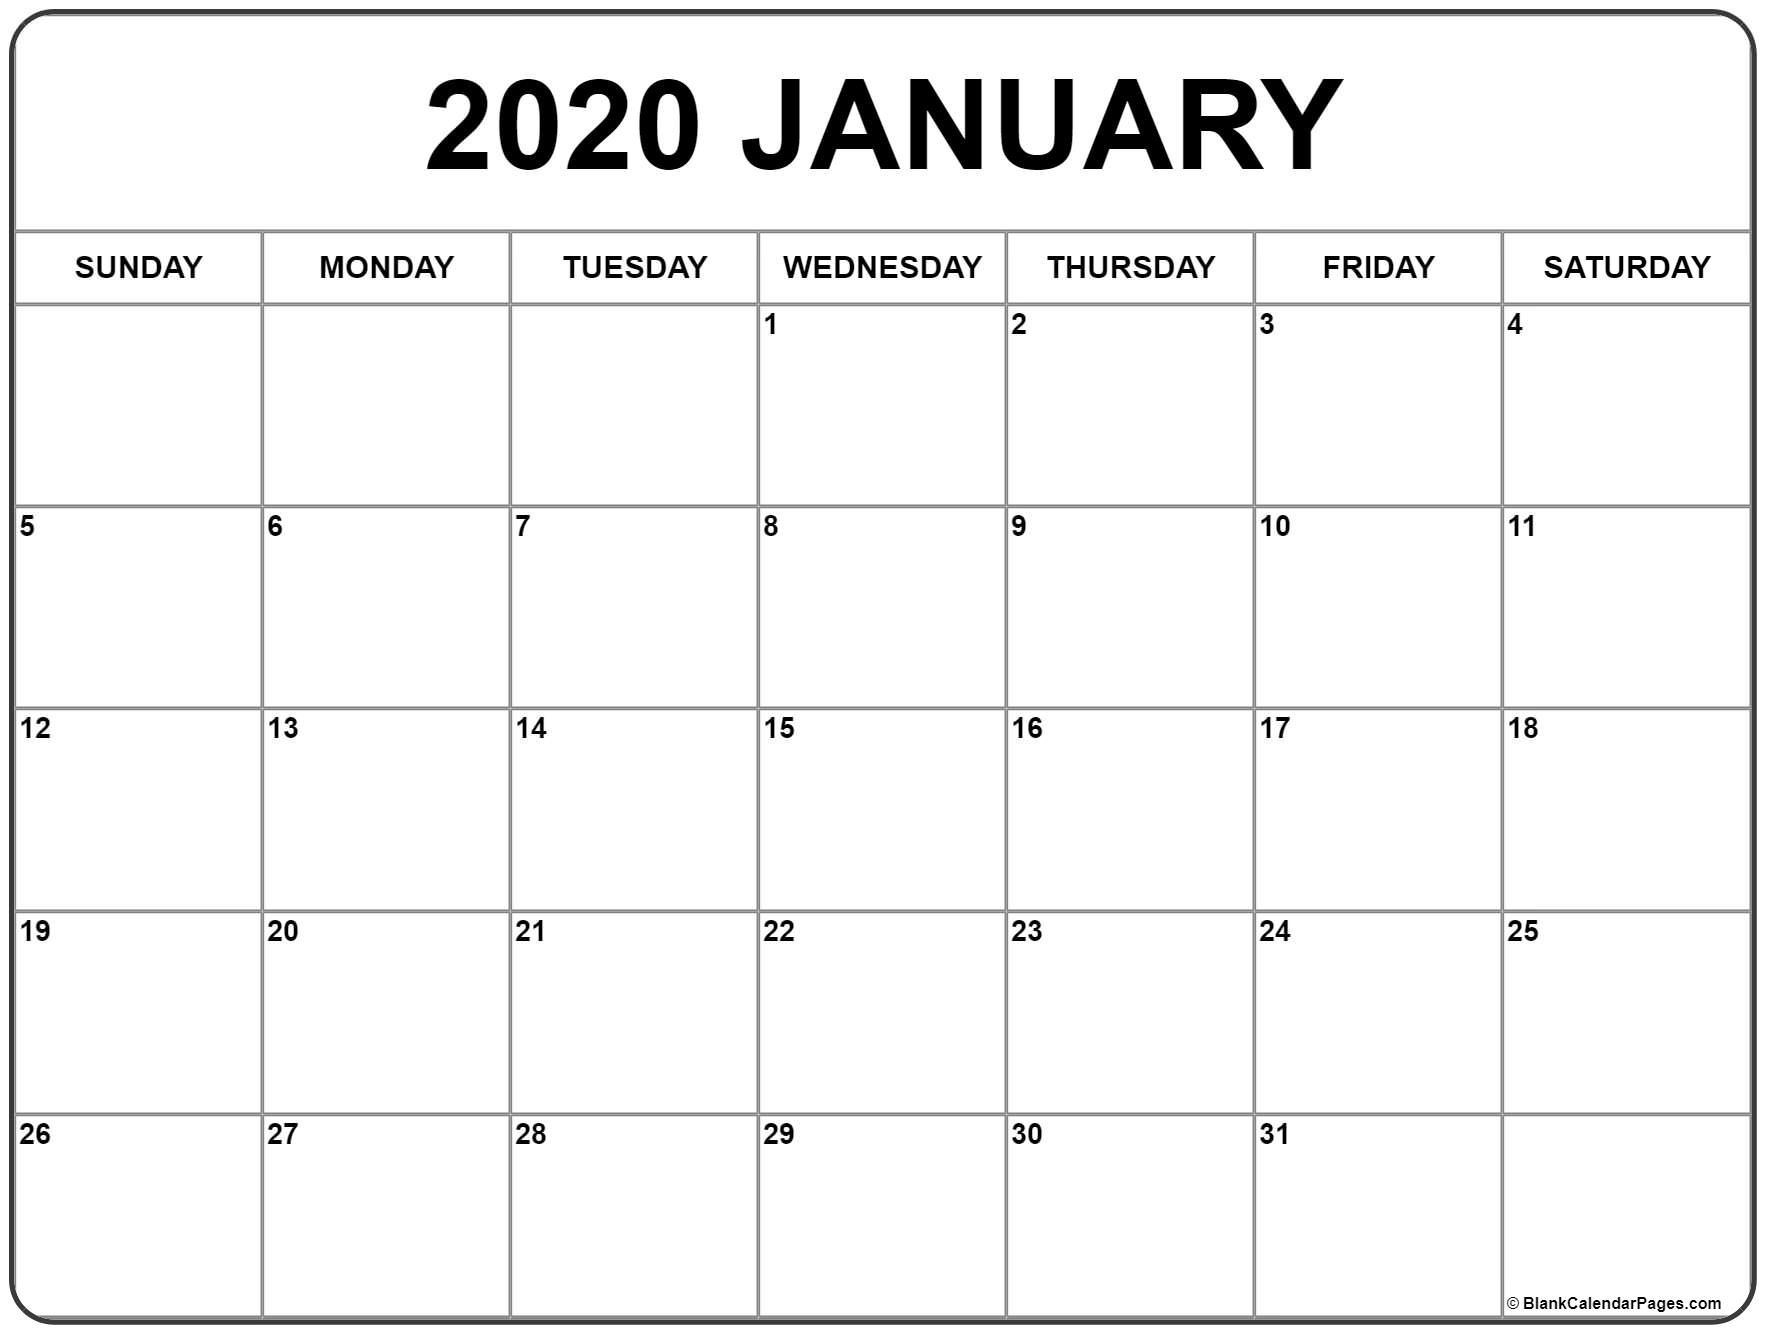 January 2020 Calendar | Free Printable Monthly Calendars-Free January 2020 Calendar Template